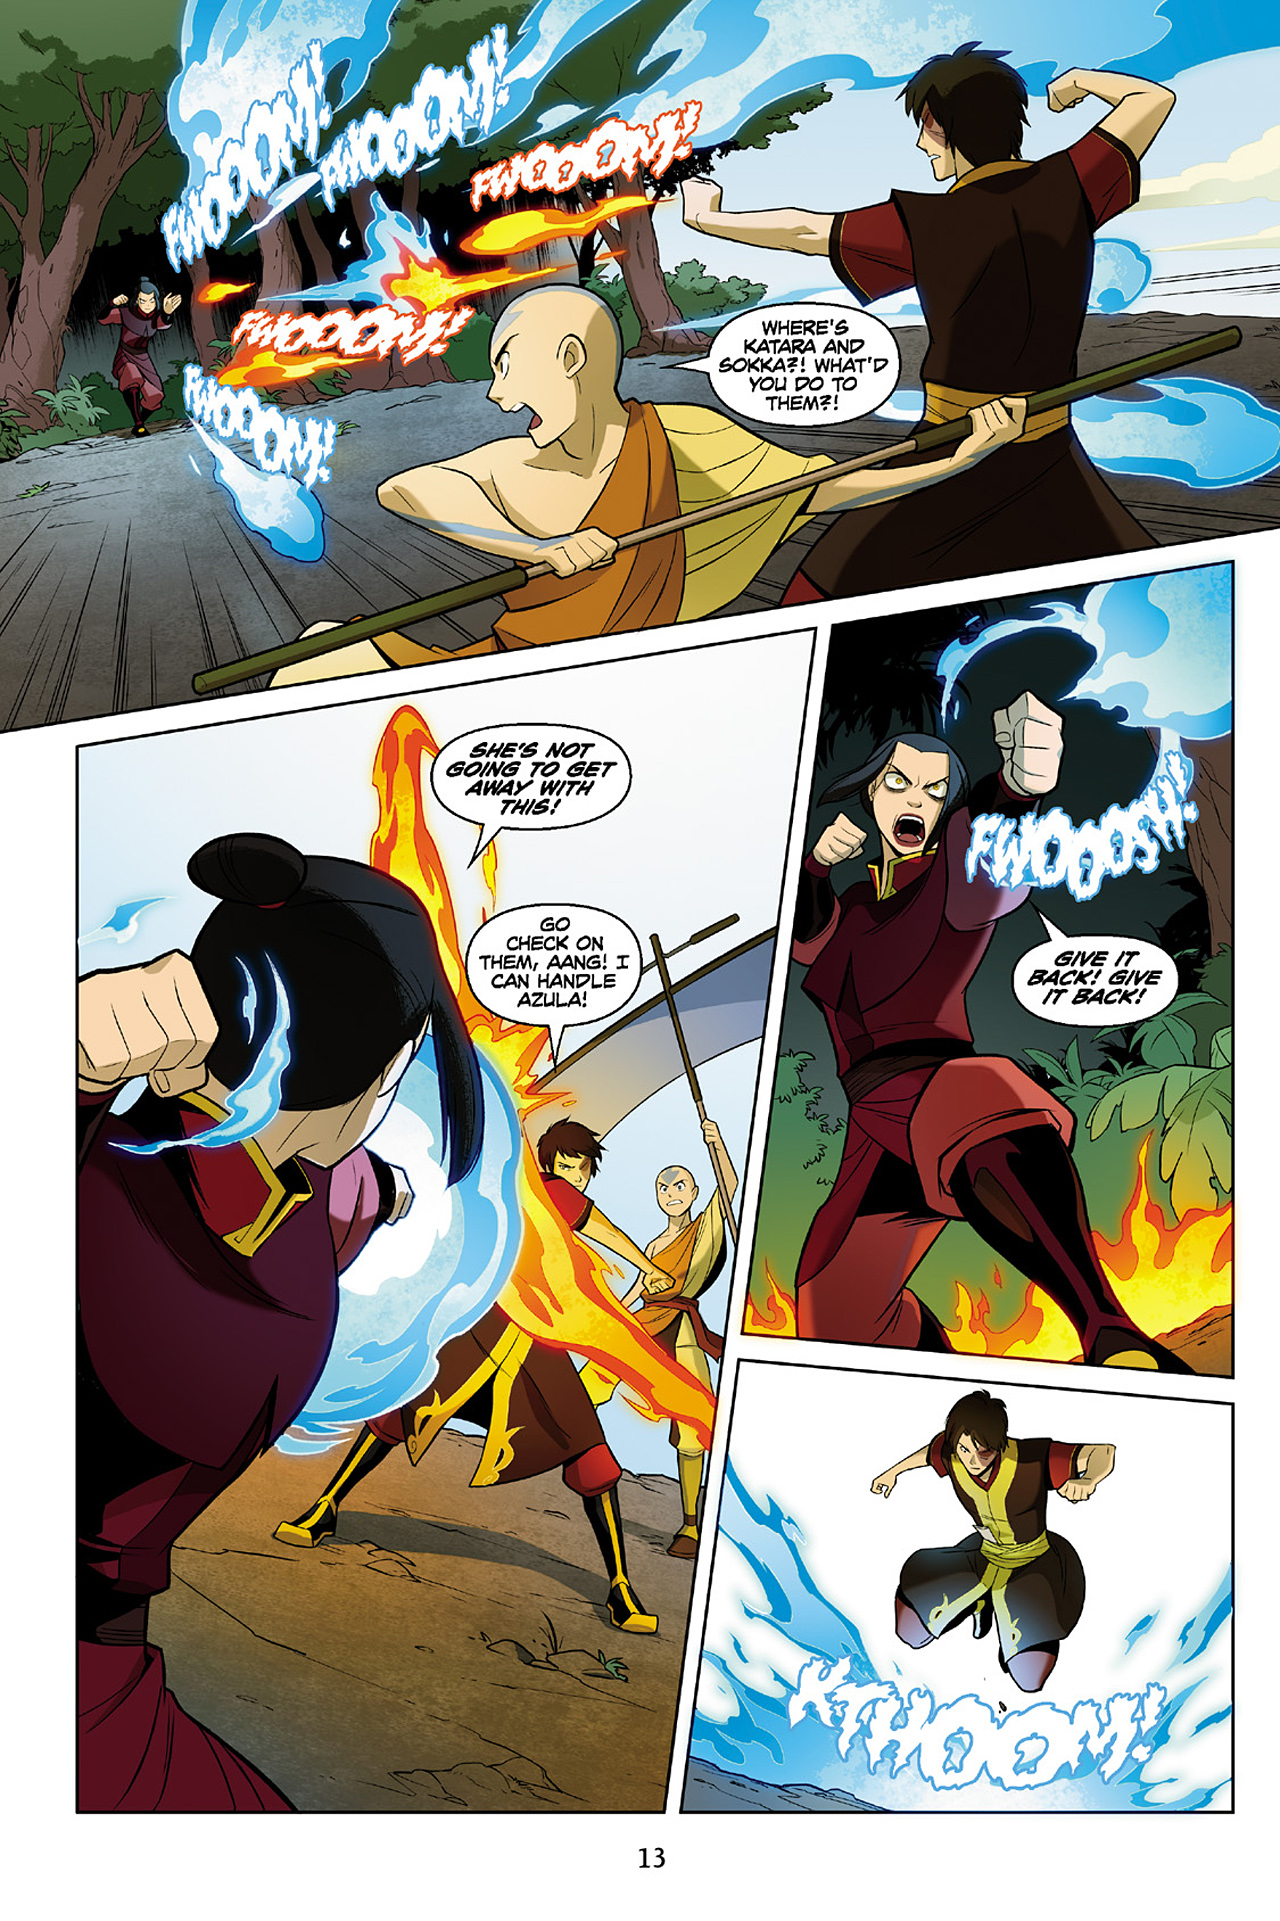 Read online Nickelodeon Avatar: The Last Airbender - The Search comic -  Issue # Part 2 - 14